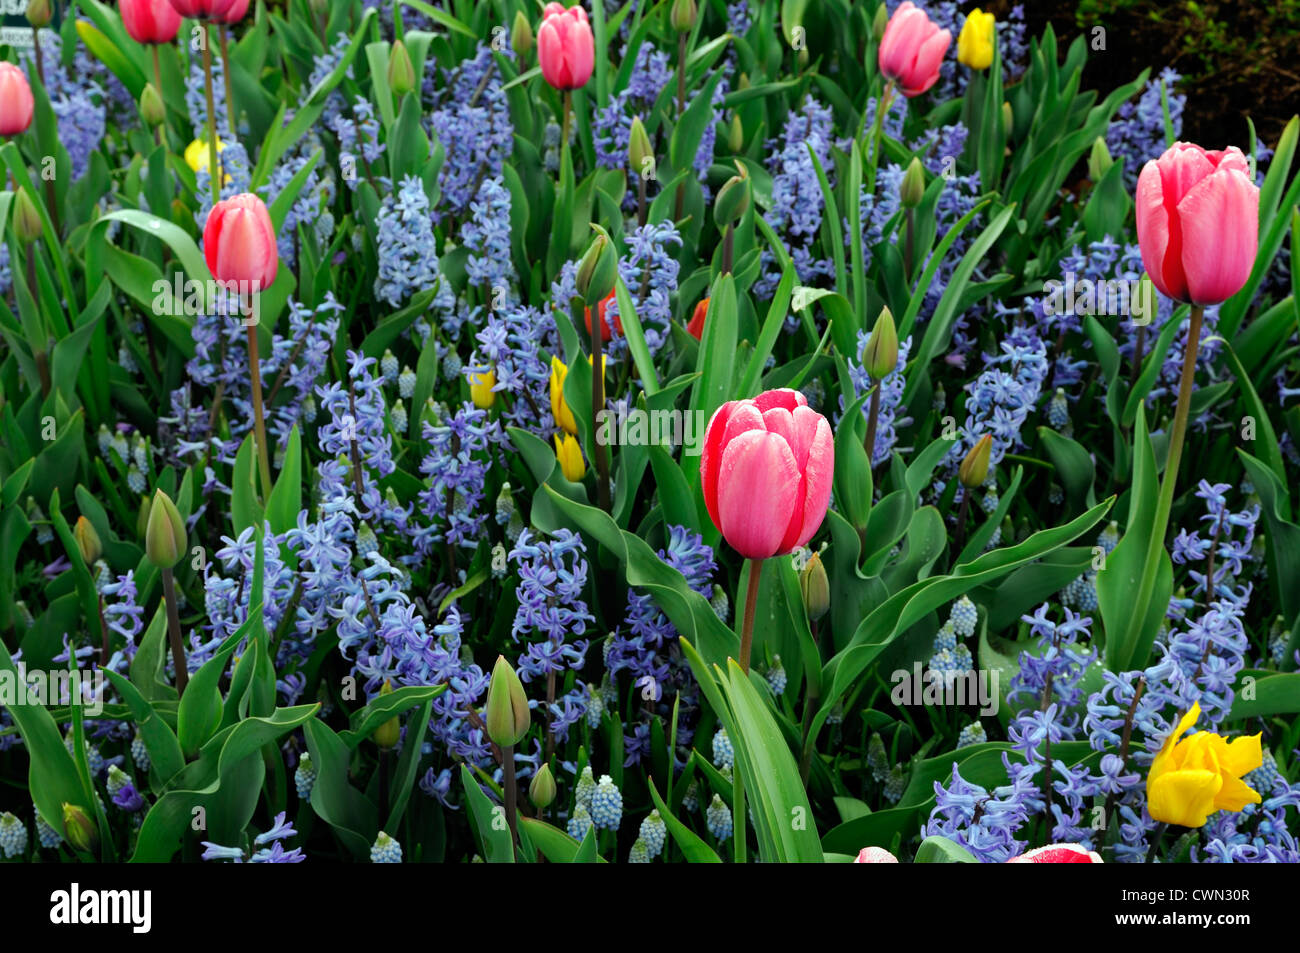 Mixed bed border spring blooming bulbs yellow blue pink color colour ...